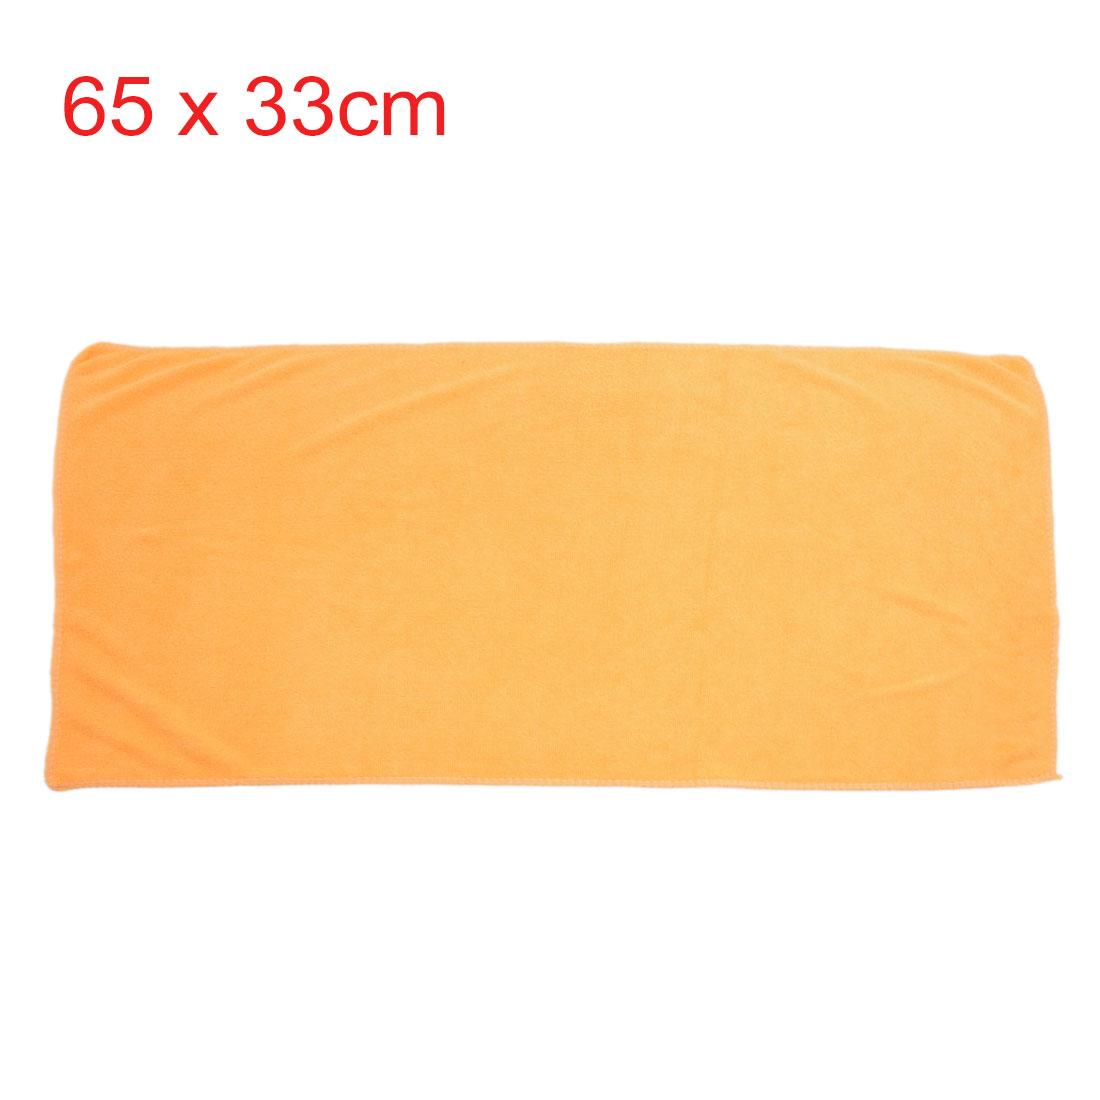 2pcs 65 x 33cm 250GSM Microfiber Towel Clean Cloths for Car Washing Blue Yellow - image 3 of 5